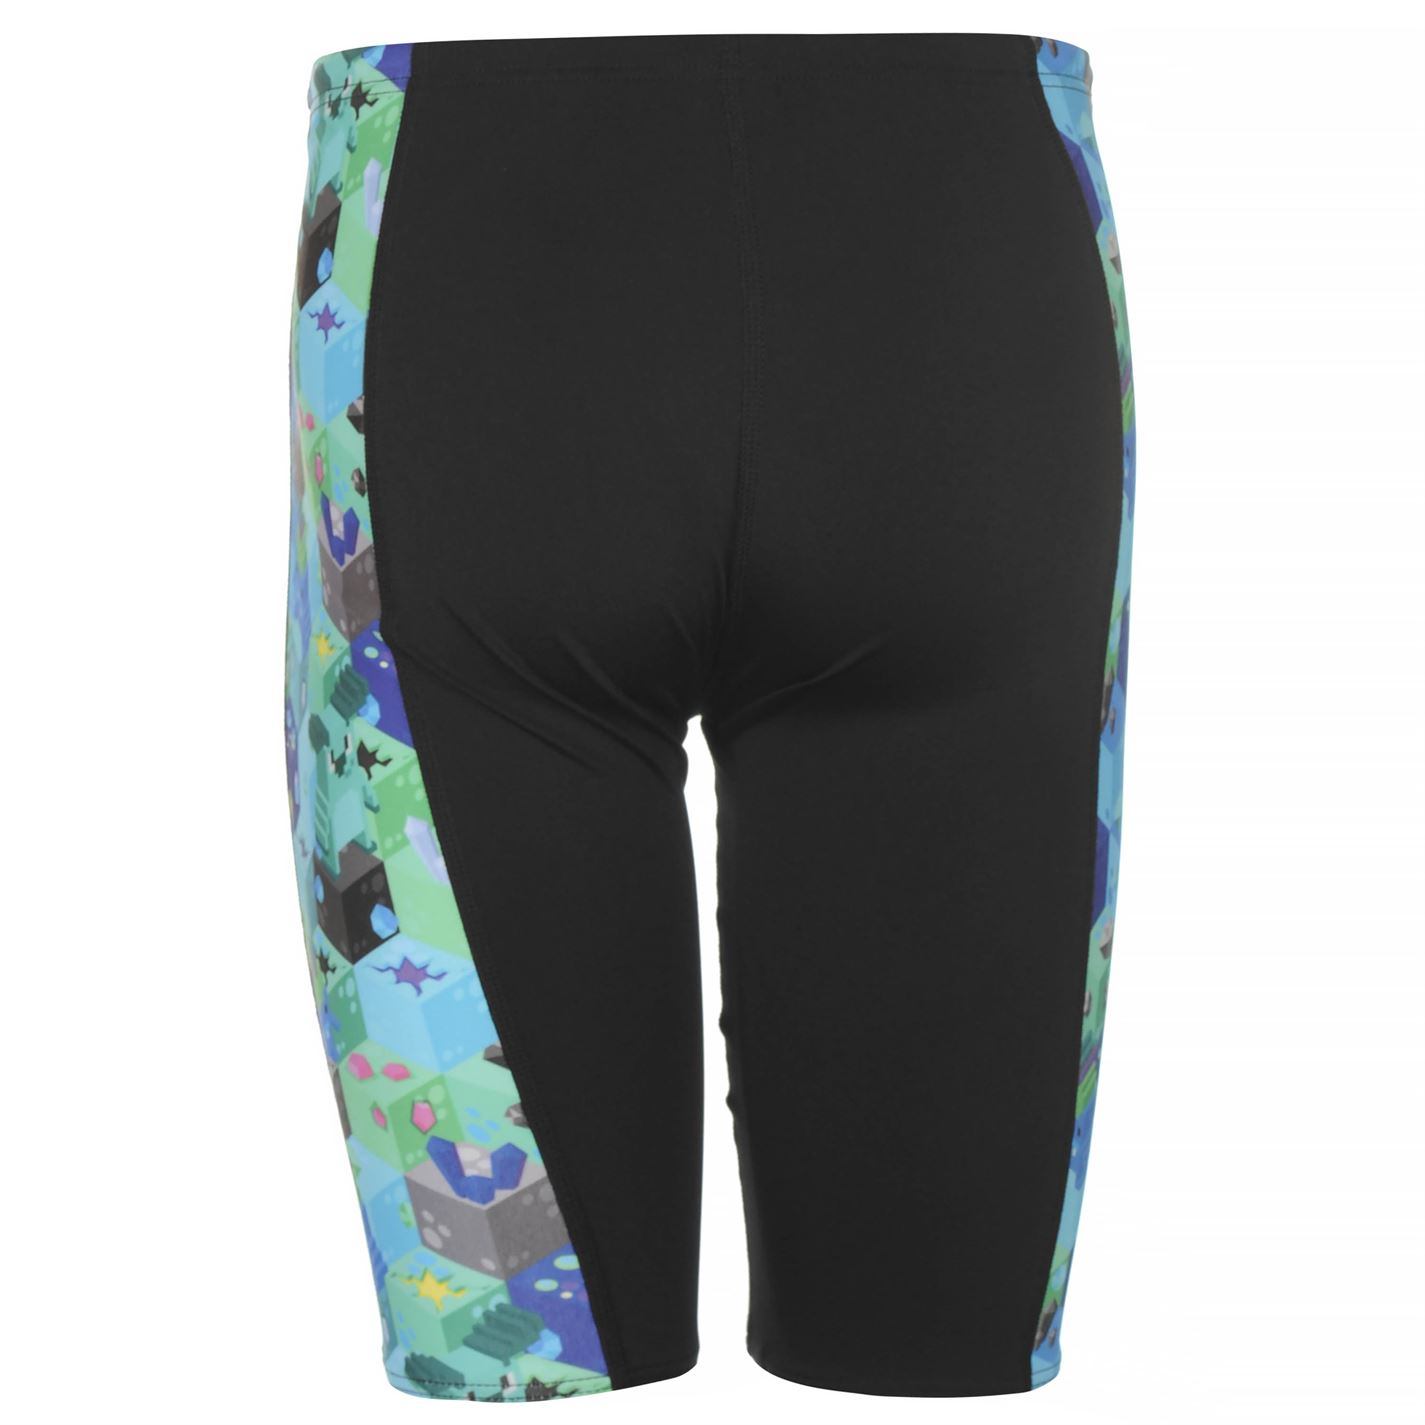 a5b40d29cd3be Maru Kids Pacer Jammers Junior Boys Trunk Shorts Training Sports ...